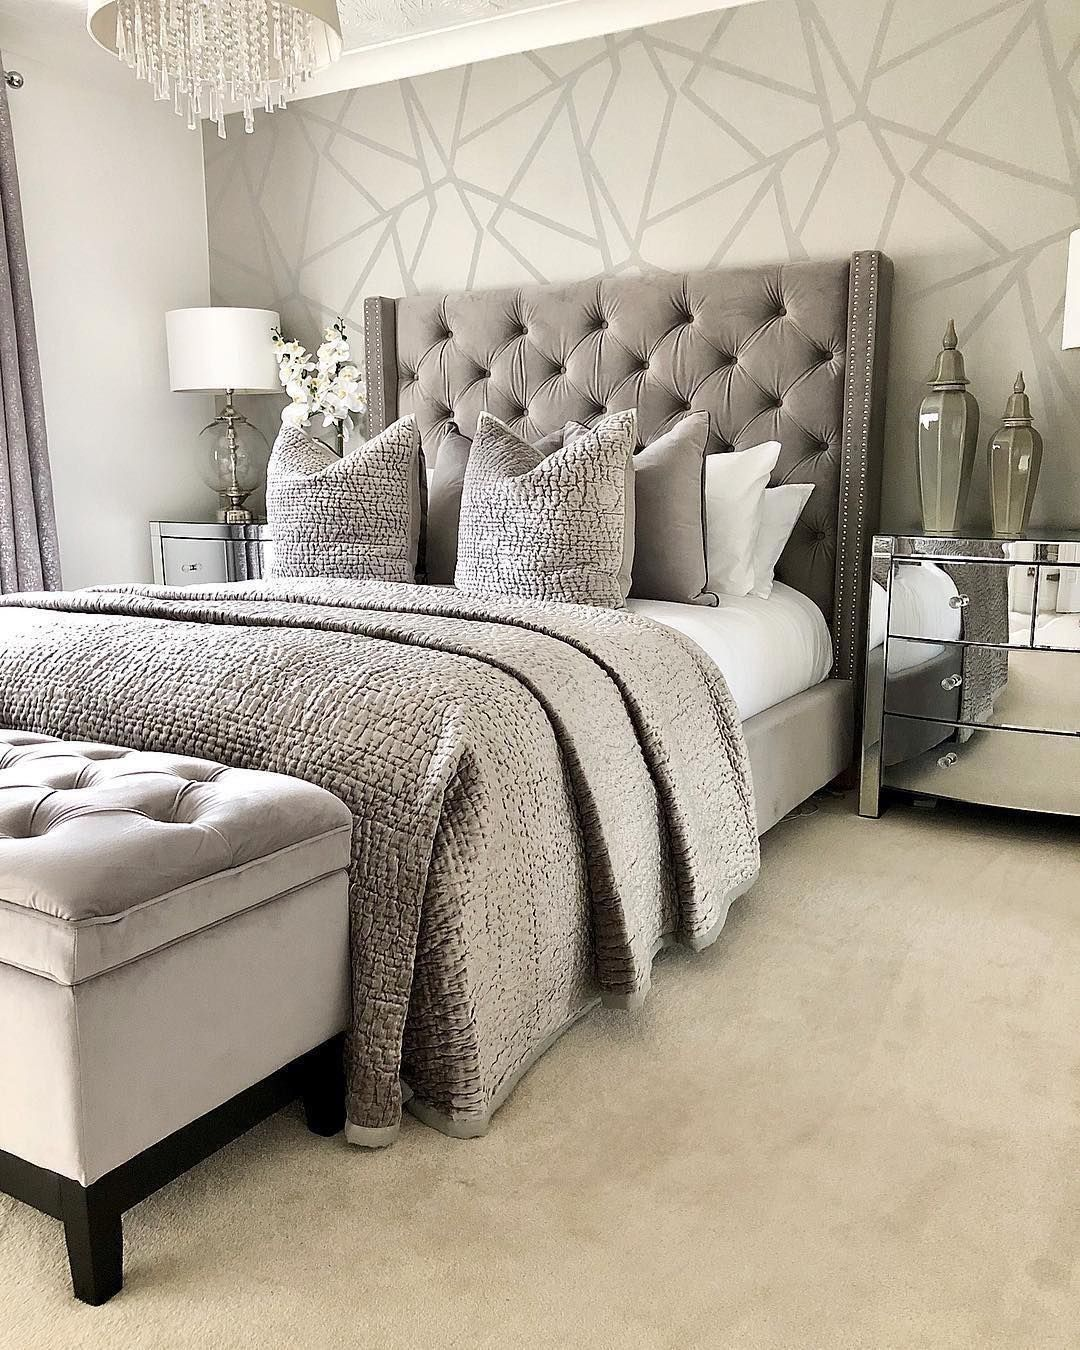 Apartment Bedroom Decor For Couples Color Combos Interior Design